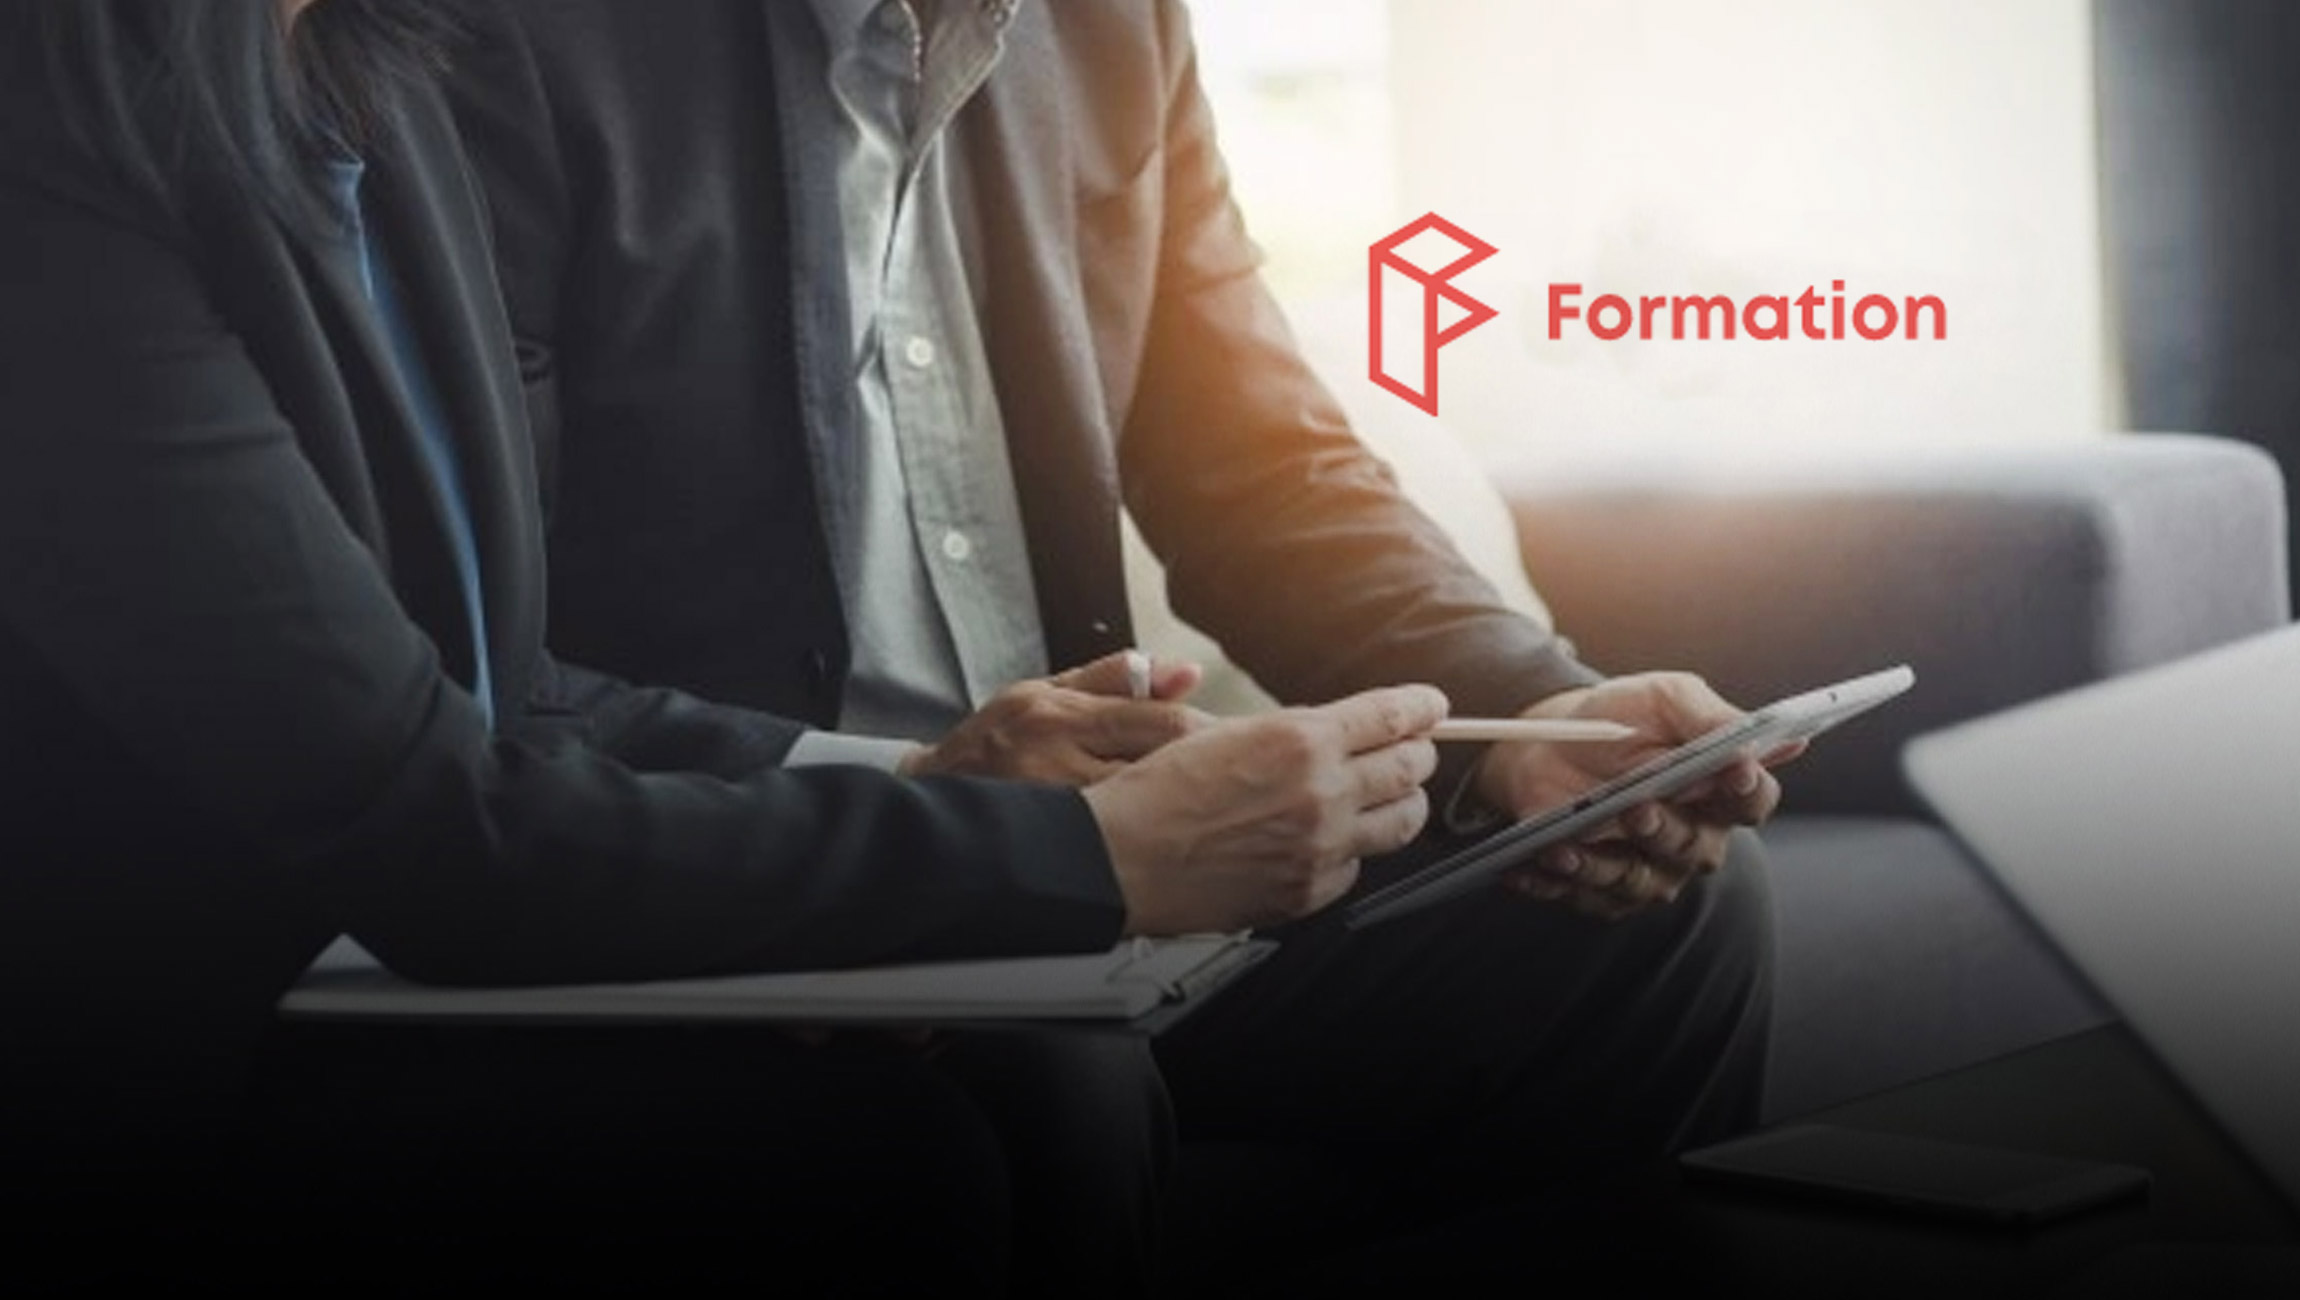 Formation Launches World's First Dynamic Offer Optimization Platform, Enabling Brands To Meet Rapidly-Changing Consumer Needs And Drive Offer Relevancy At Scale